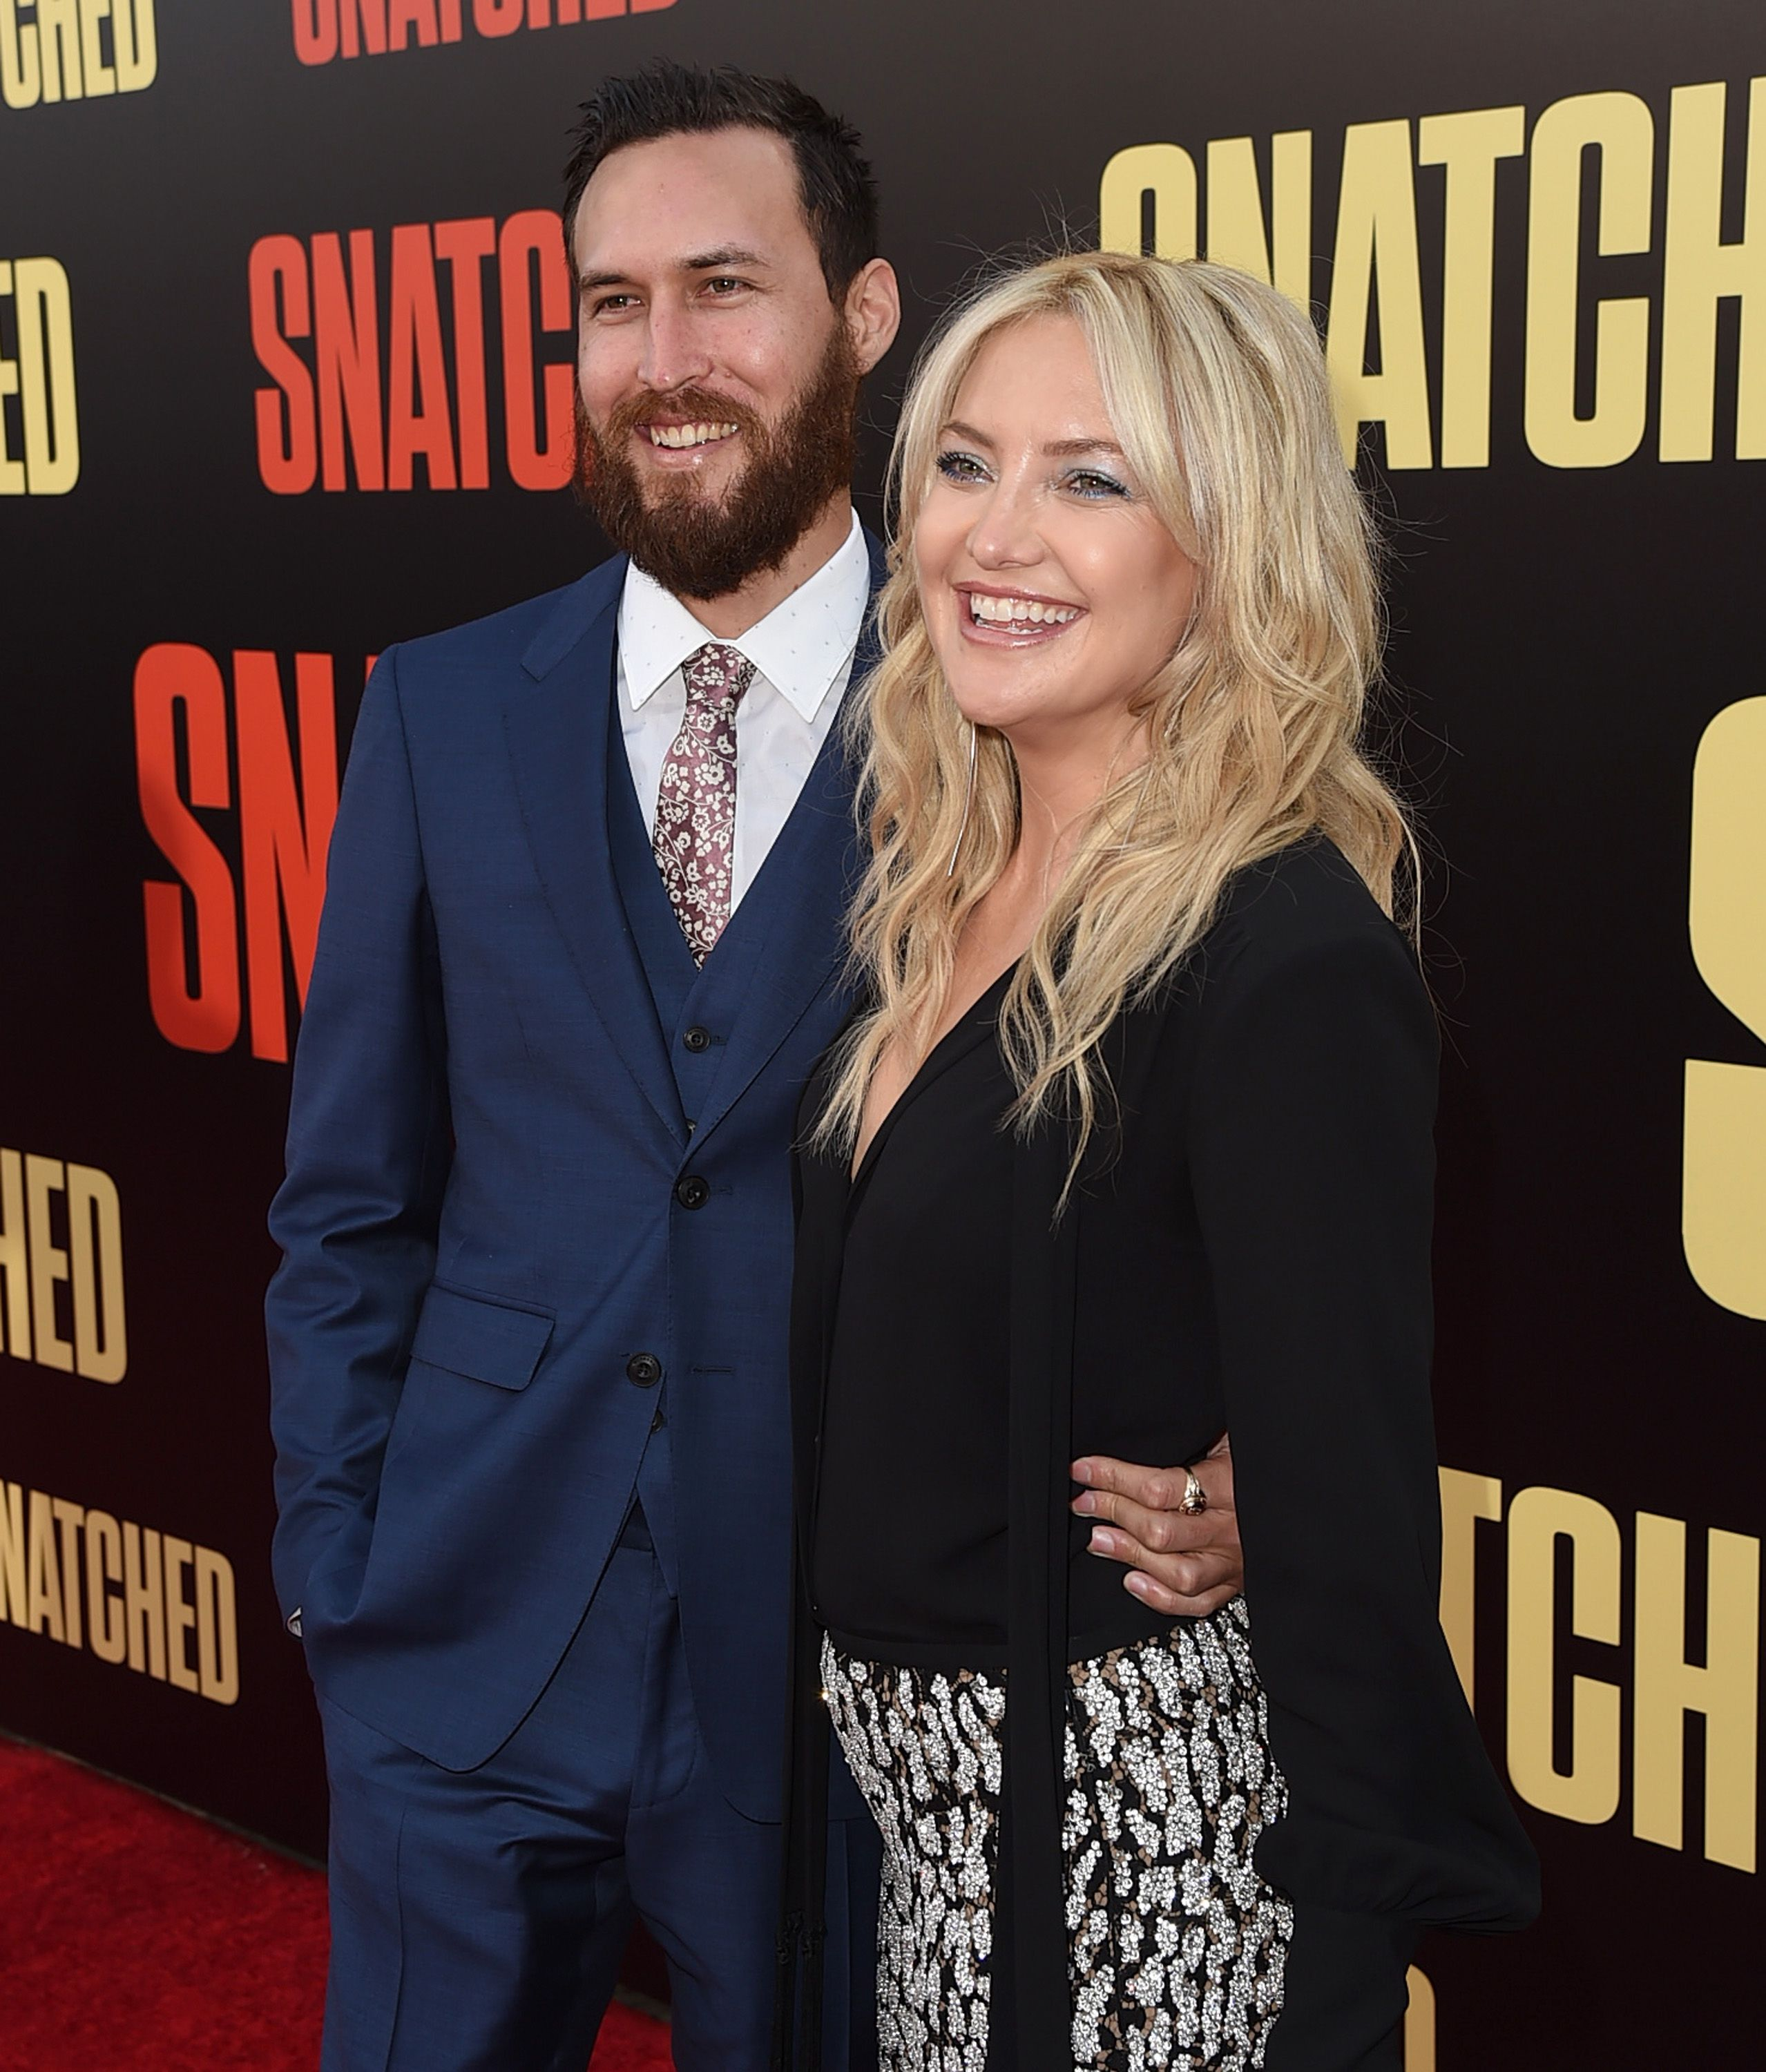 """Danny FujikawaandKate Hudson atthe premiere of""""Snatched"""" at Regency Village Theatre on May 10, 2017, in Westwood, California 